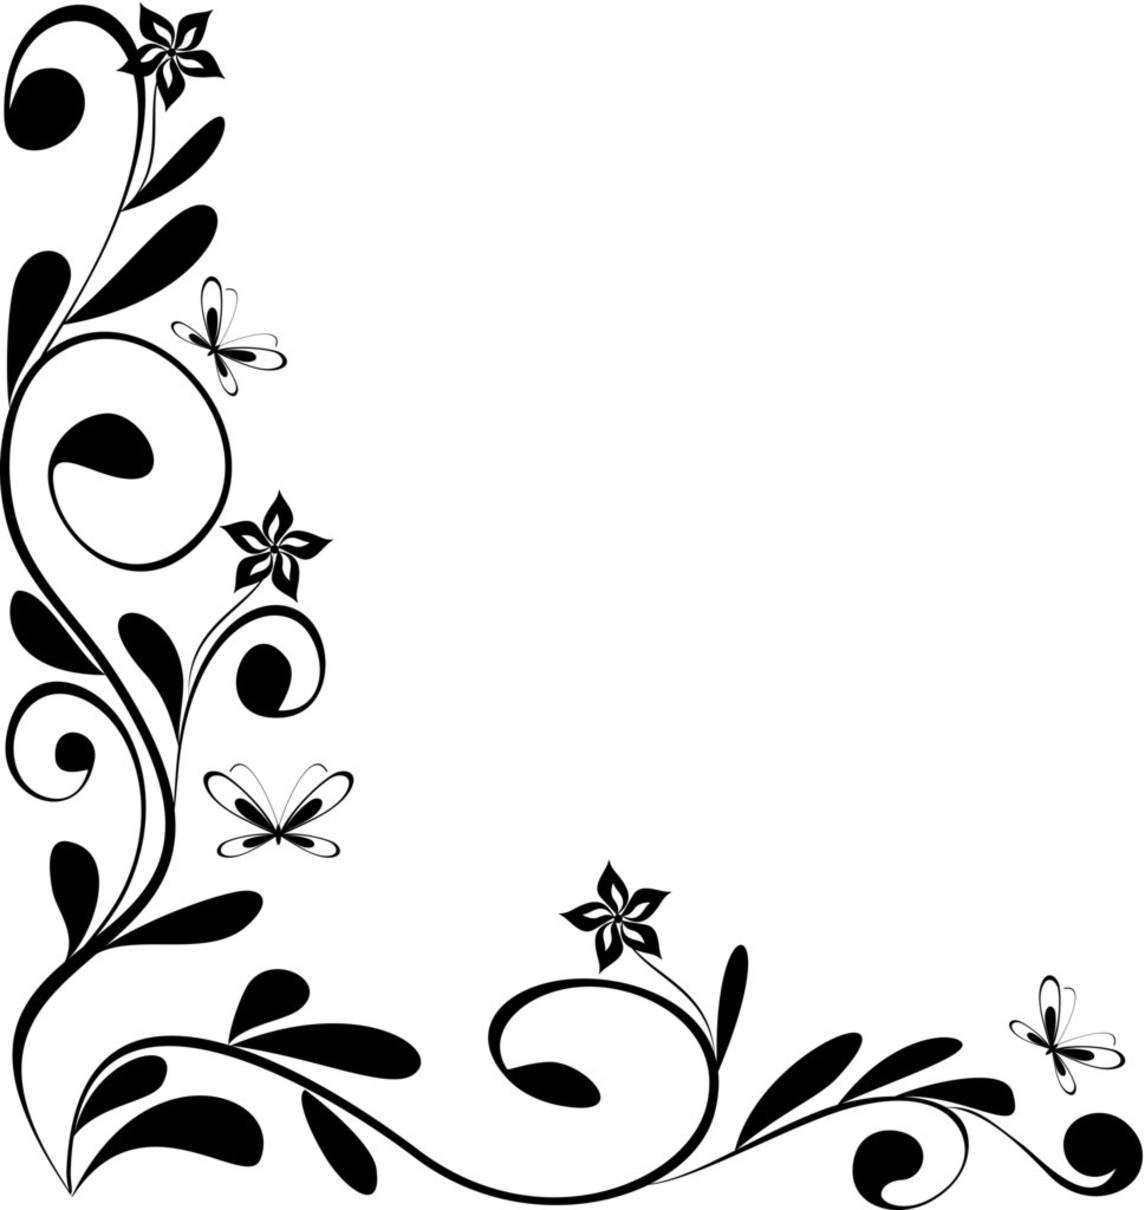 White an Black Corner Border Designs